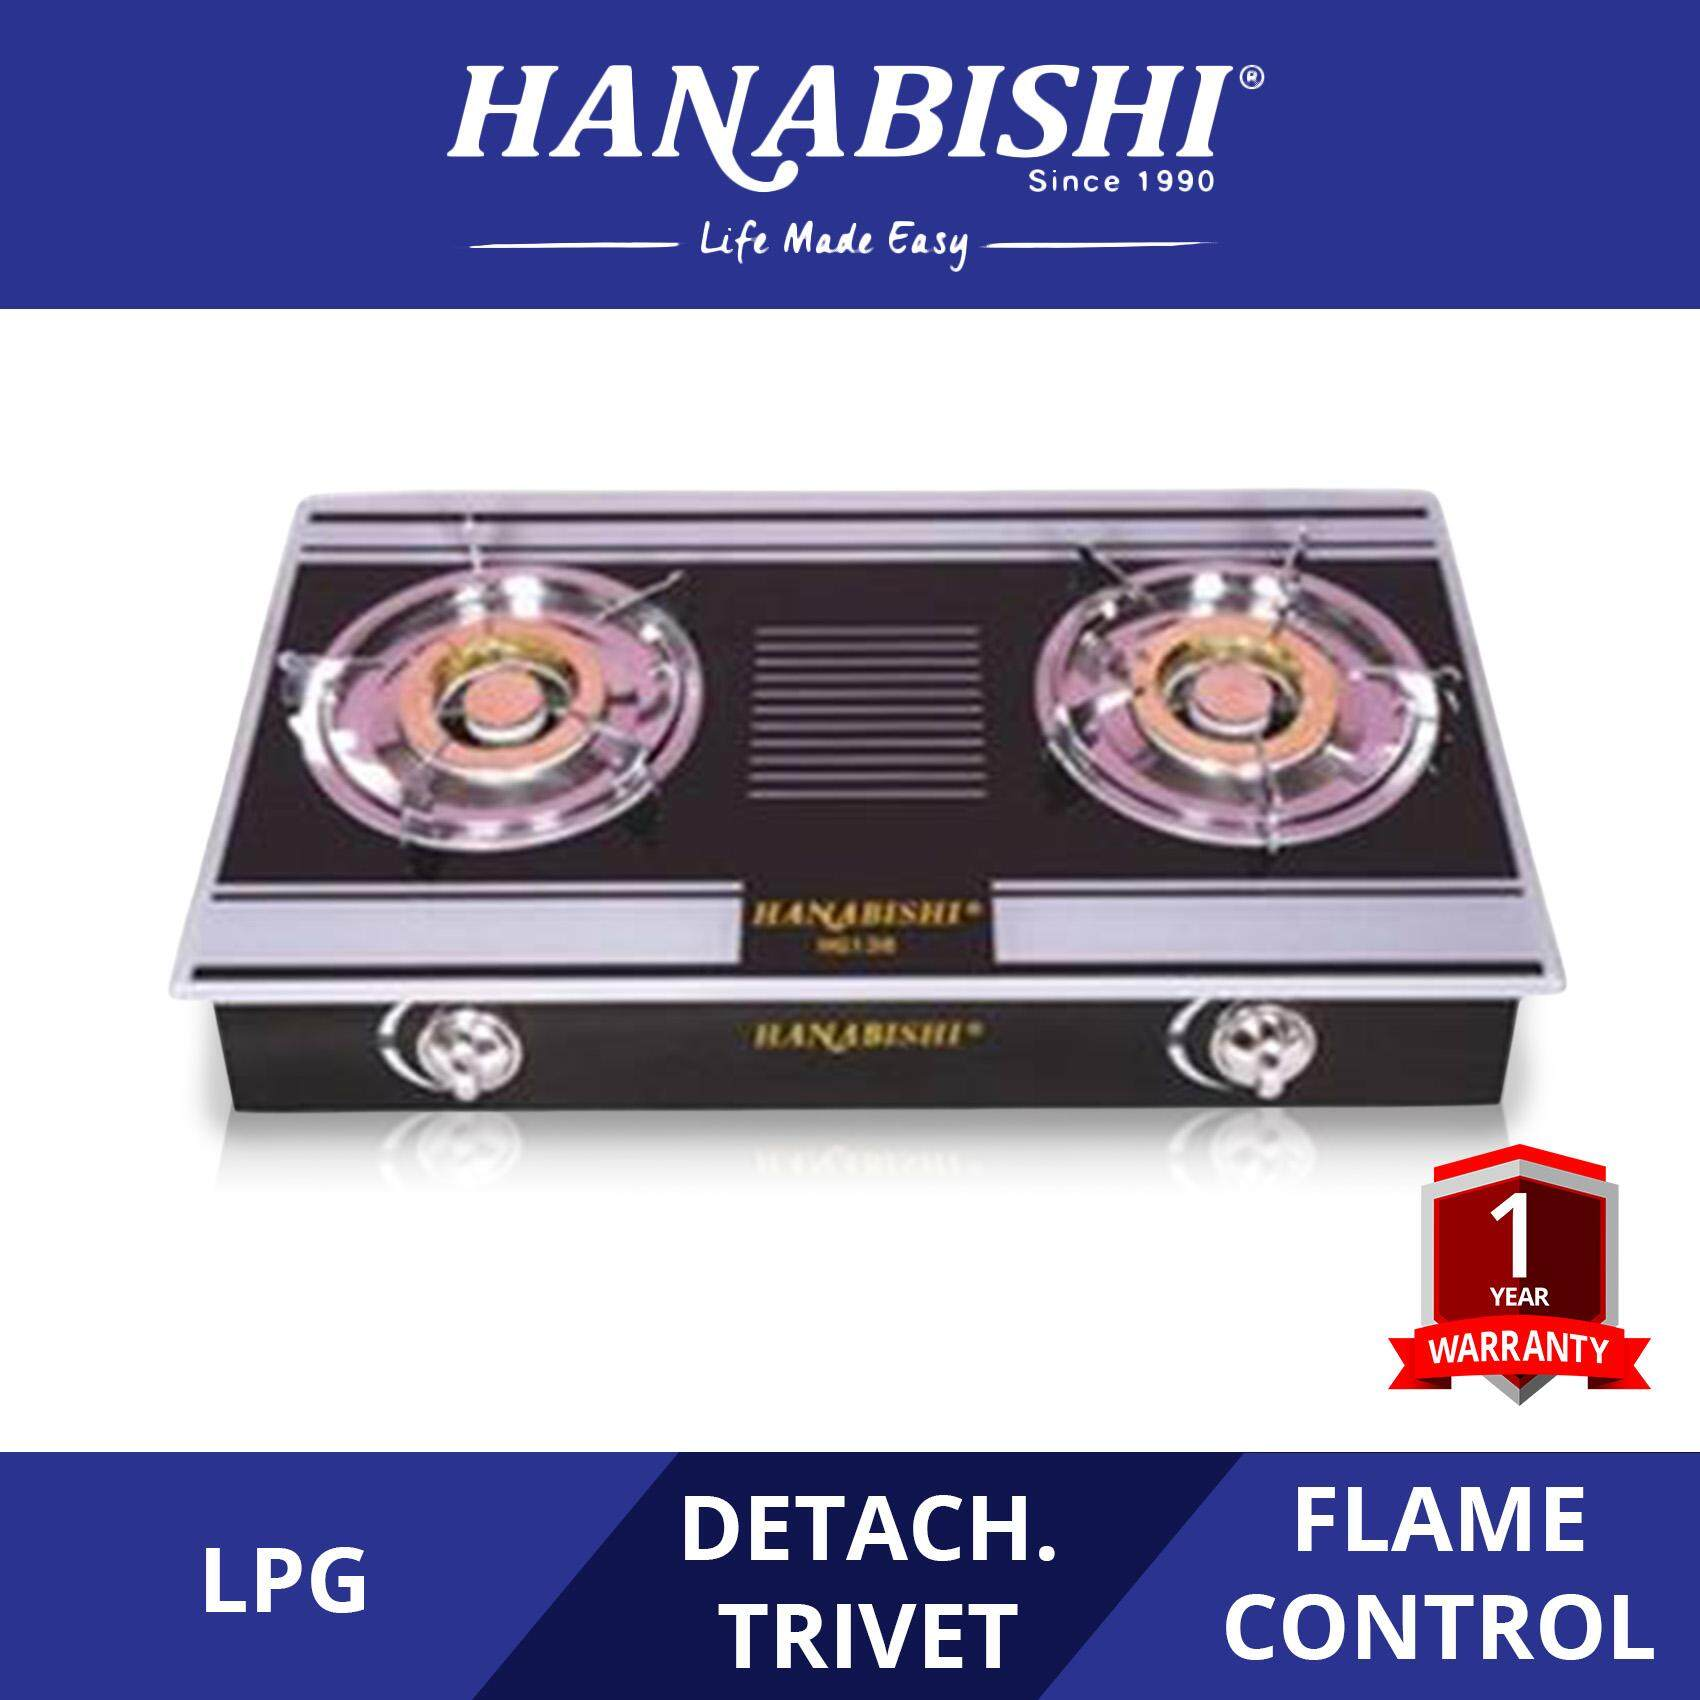 Hanabishi Table Glass Top Two Ring Burner HG138